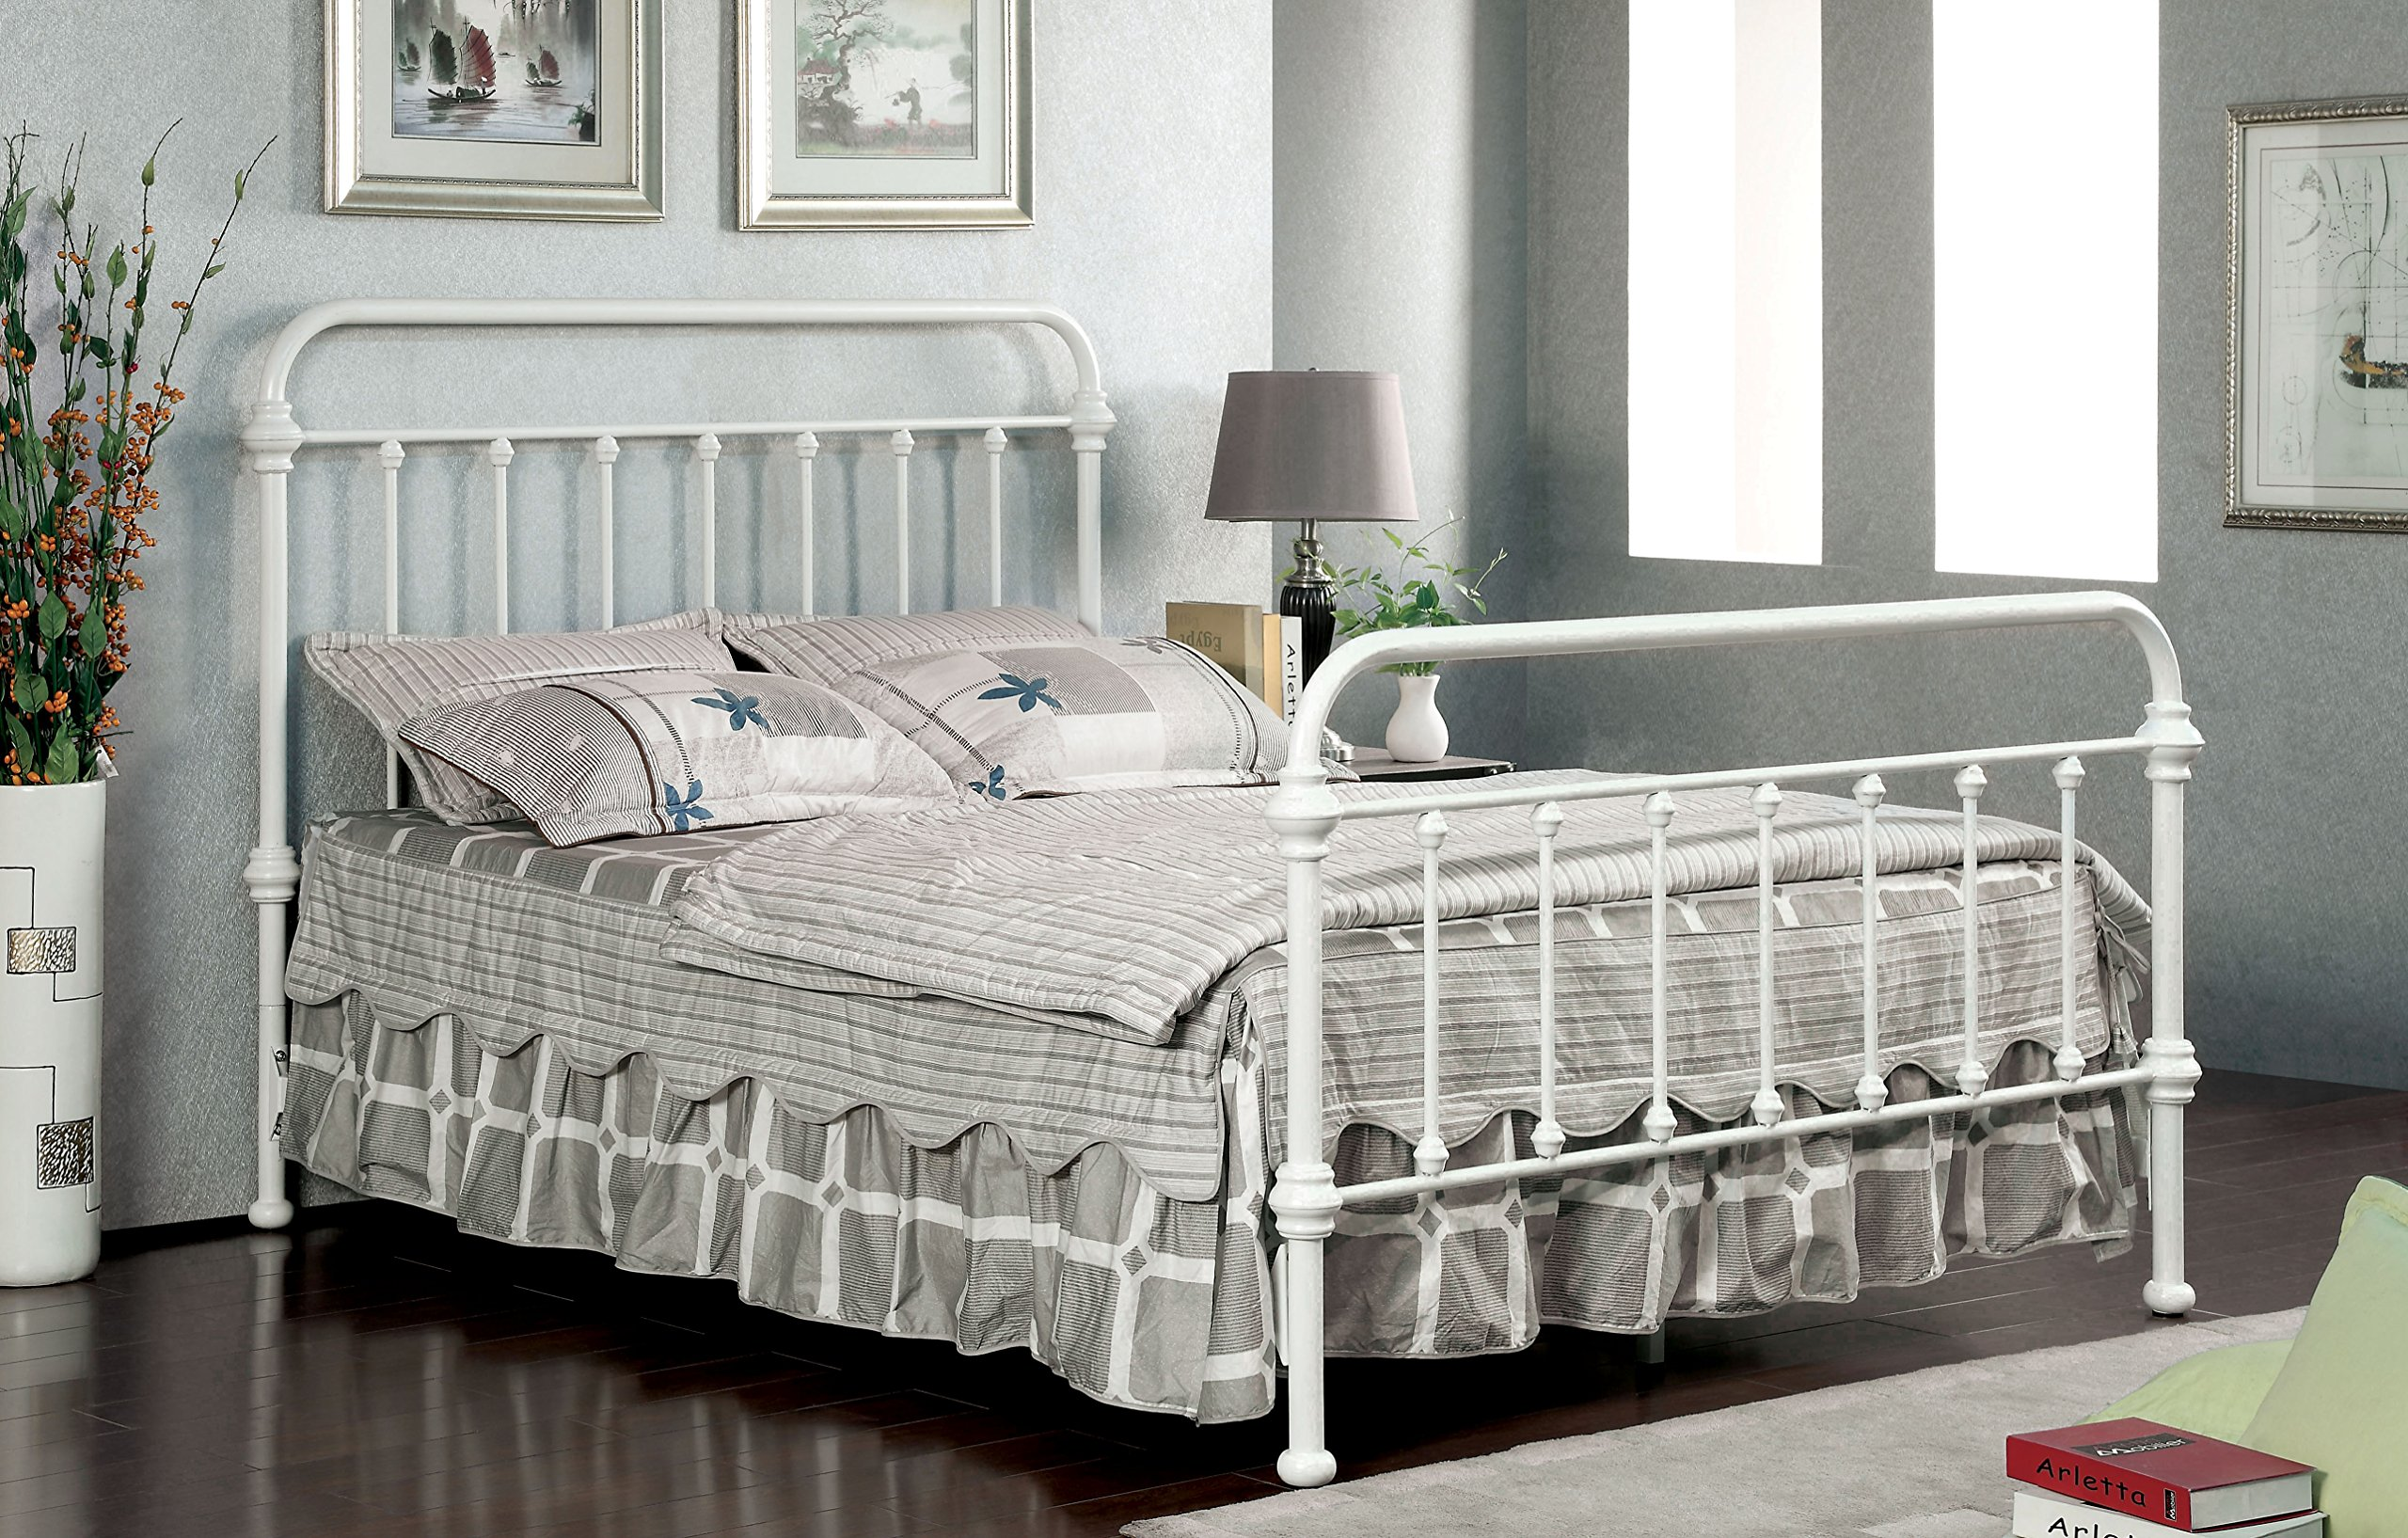 Furniture of America Overtown Metal Bed, Full, Vintage White